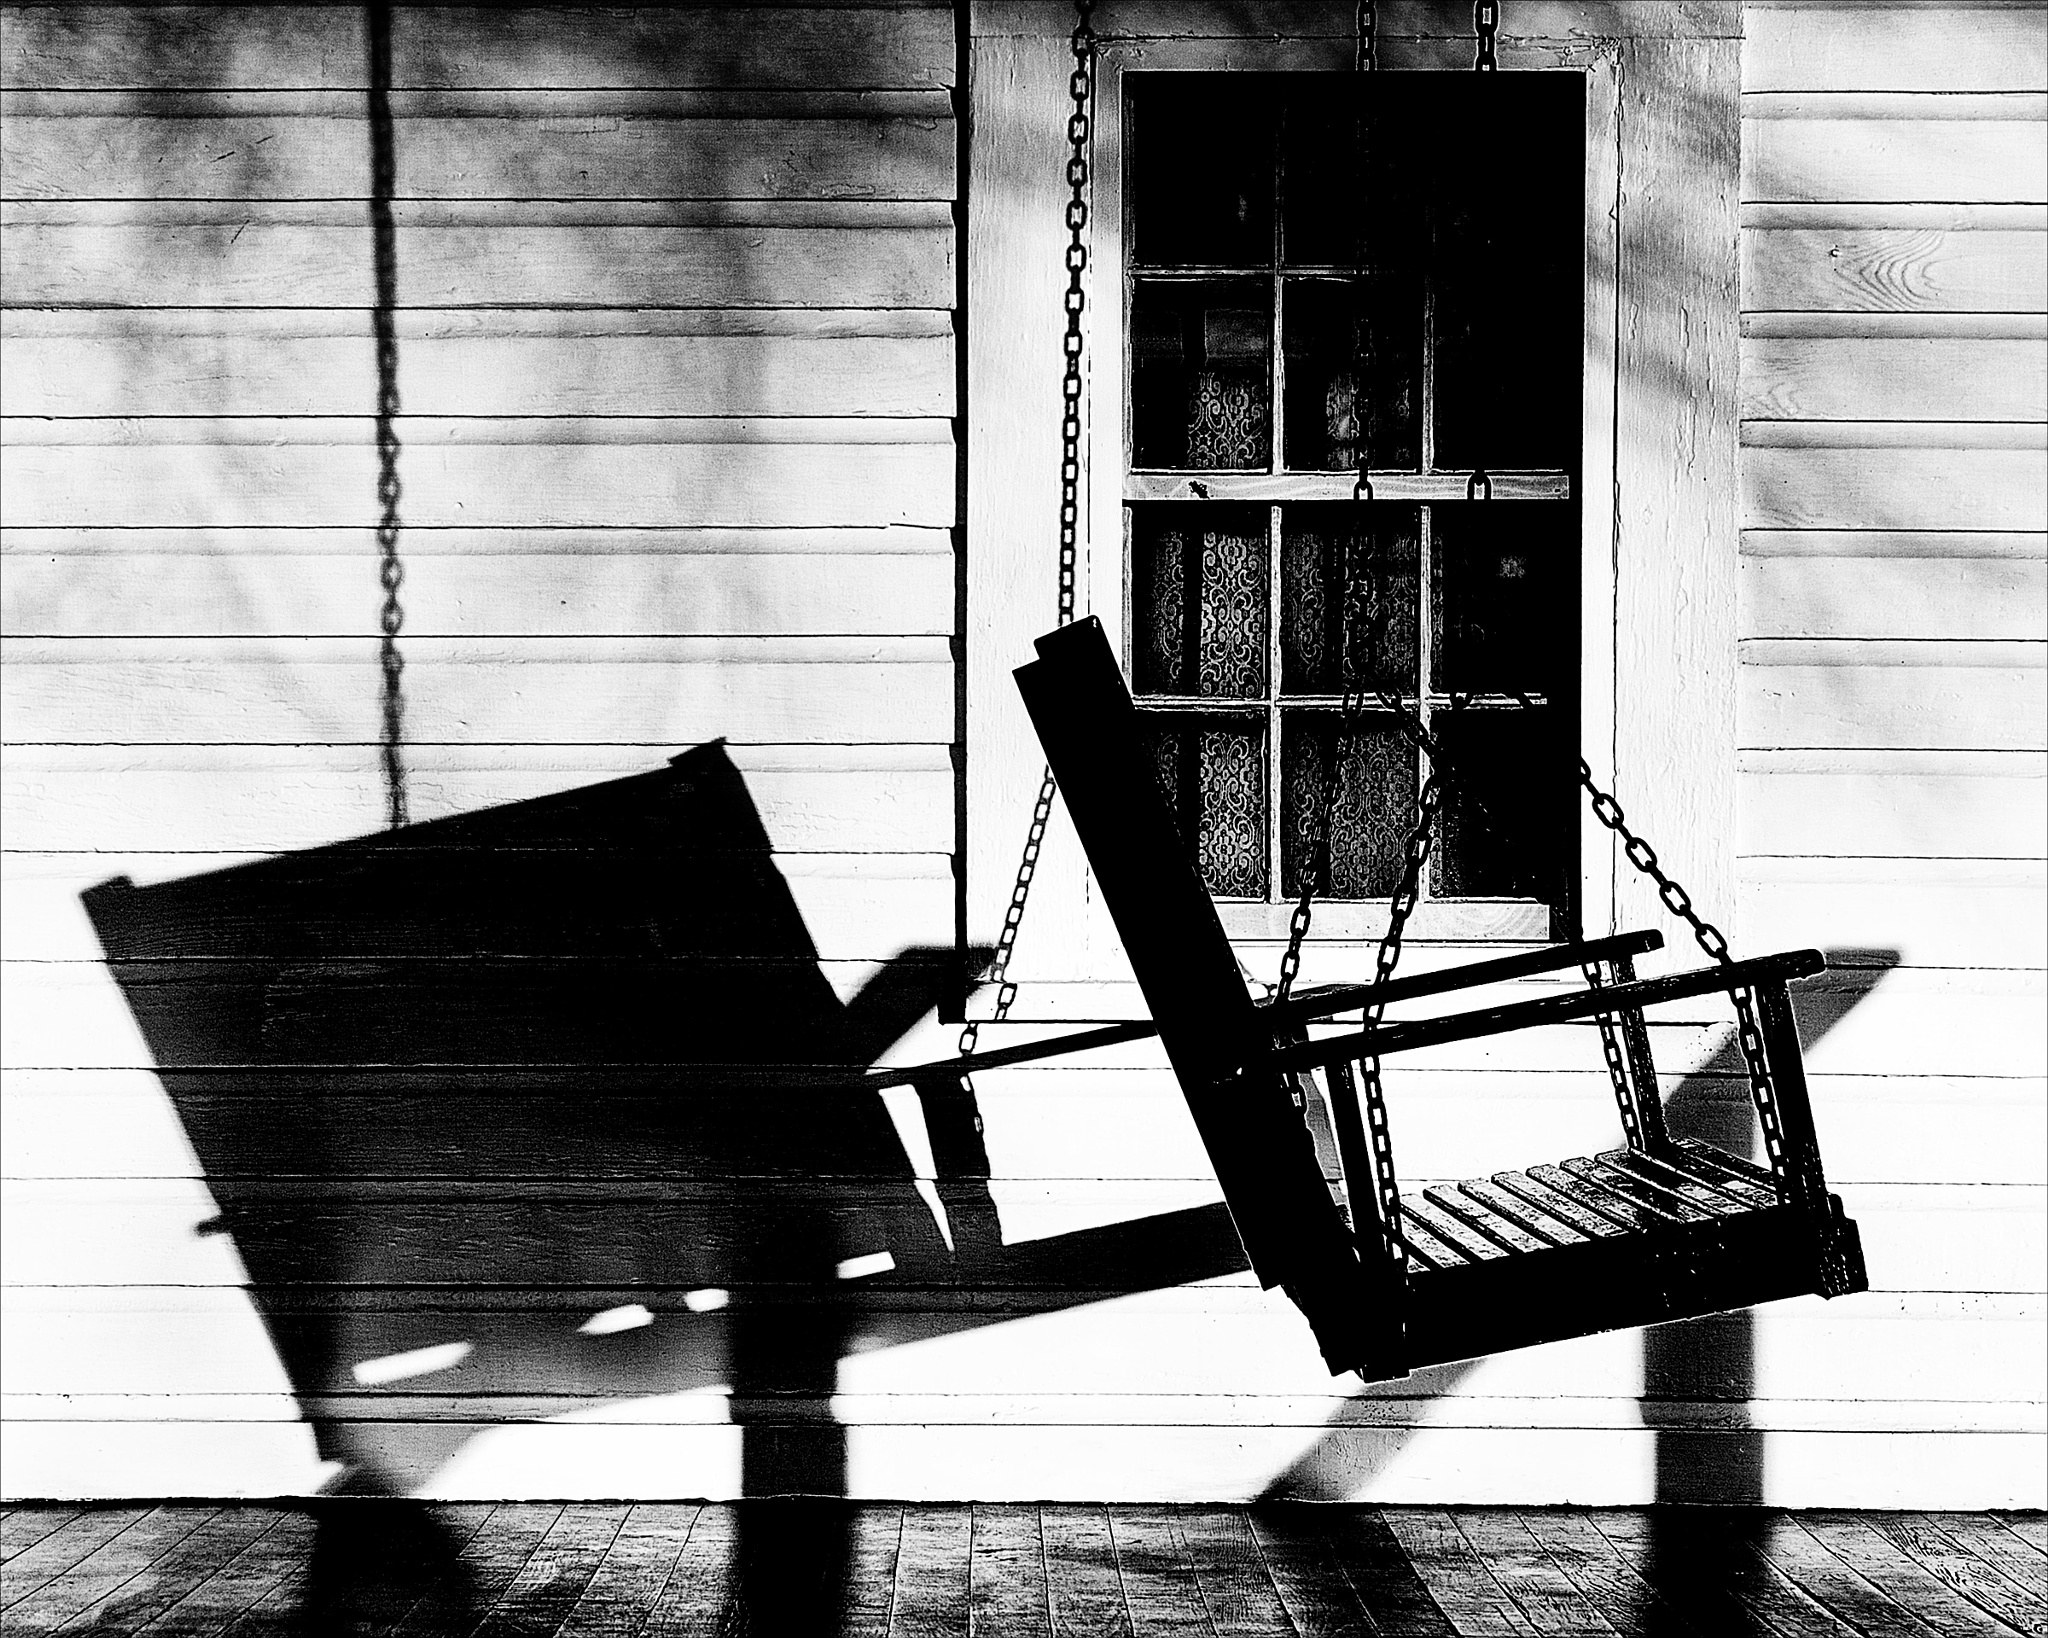 The King's Swing - Elvis Presley Birthplace - Tupelo, Mississippi by Leroy